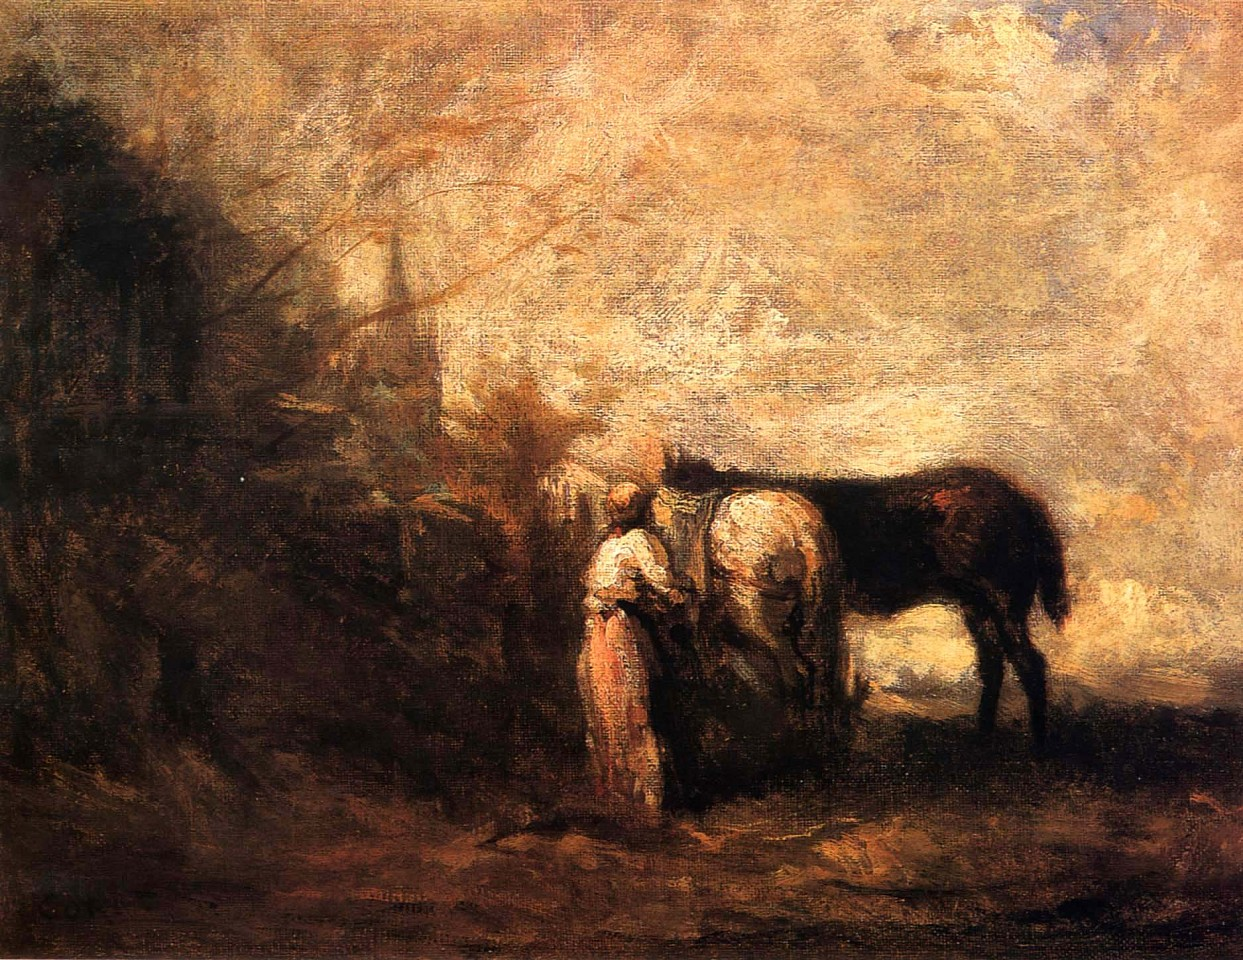 Jean Baptiste Camille Corot ,   Les Chevaux de Wouvermans  ,  1872-74     Oil on canvas ,  10 1/4 x 13 3/8 in. (26 x 34 cm)     COR-004-PA     $95,000